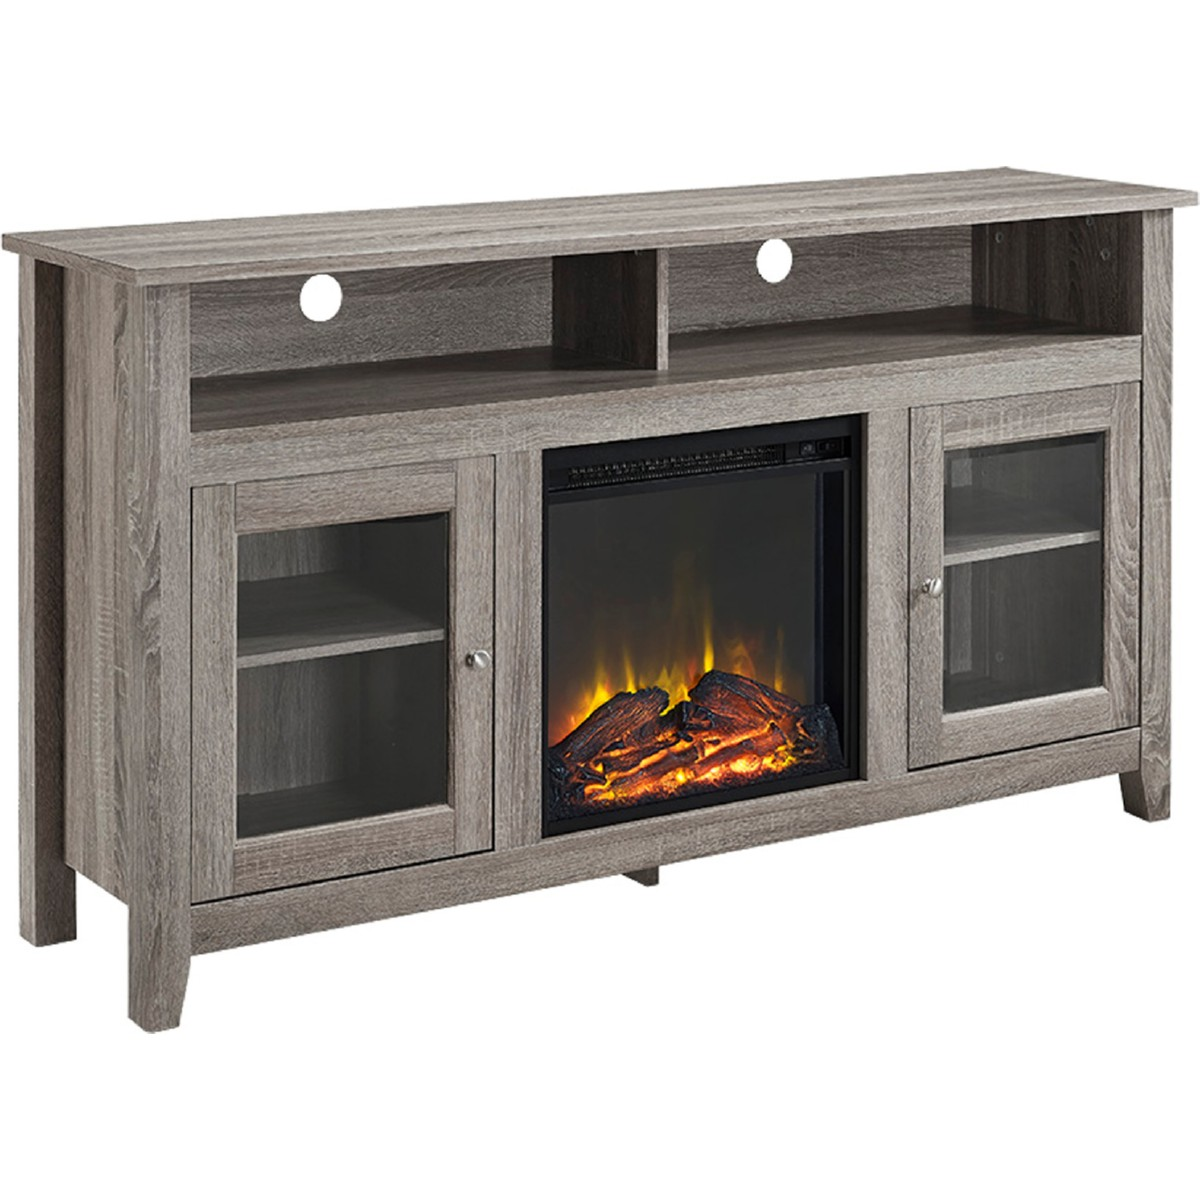 Walker Edison W58fp18hbag 58 Wood Highboy Fireplace Tv Stand In Driftwood